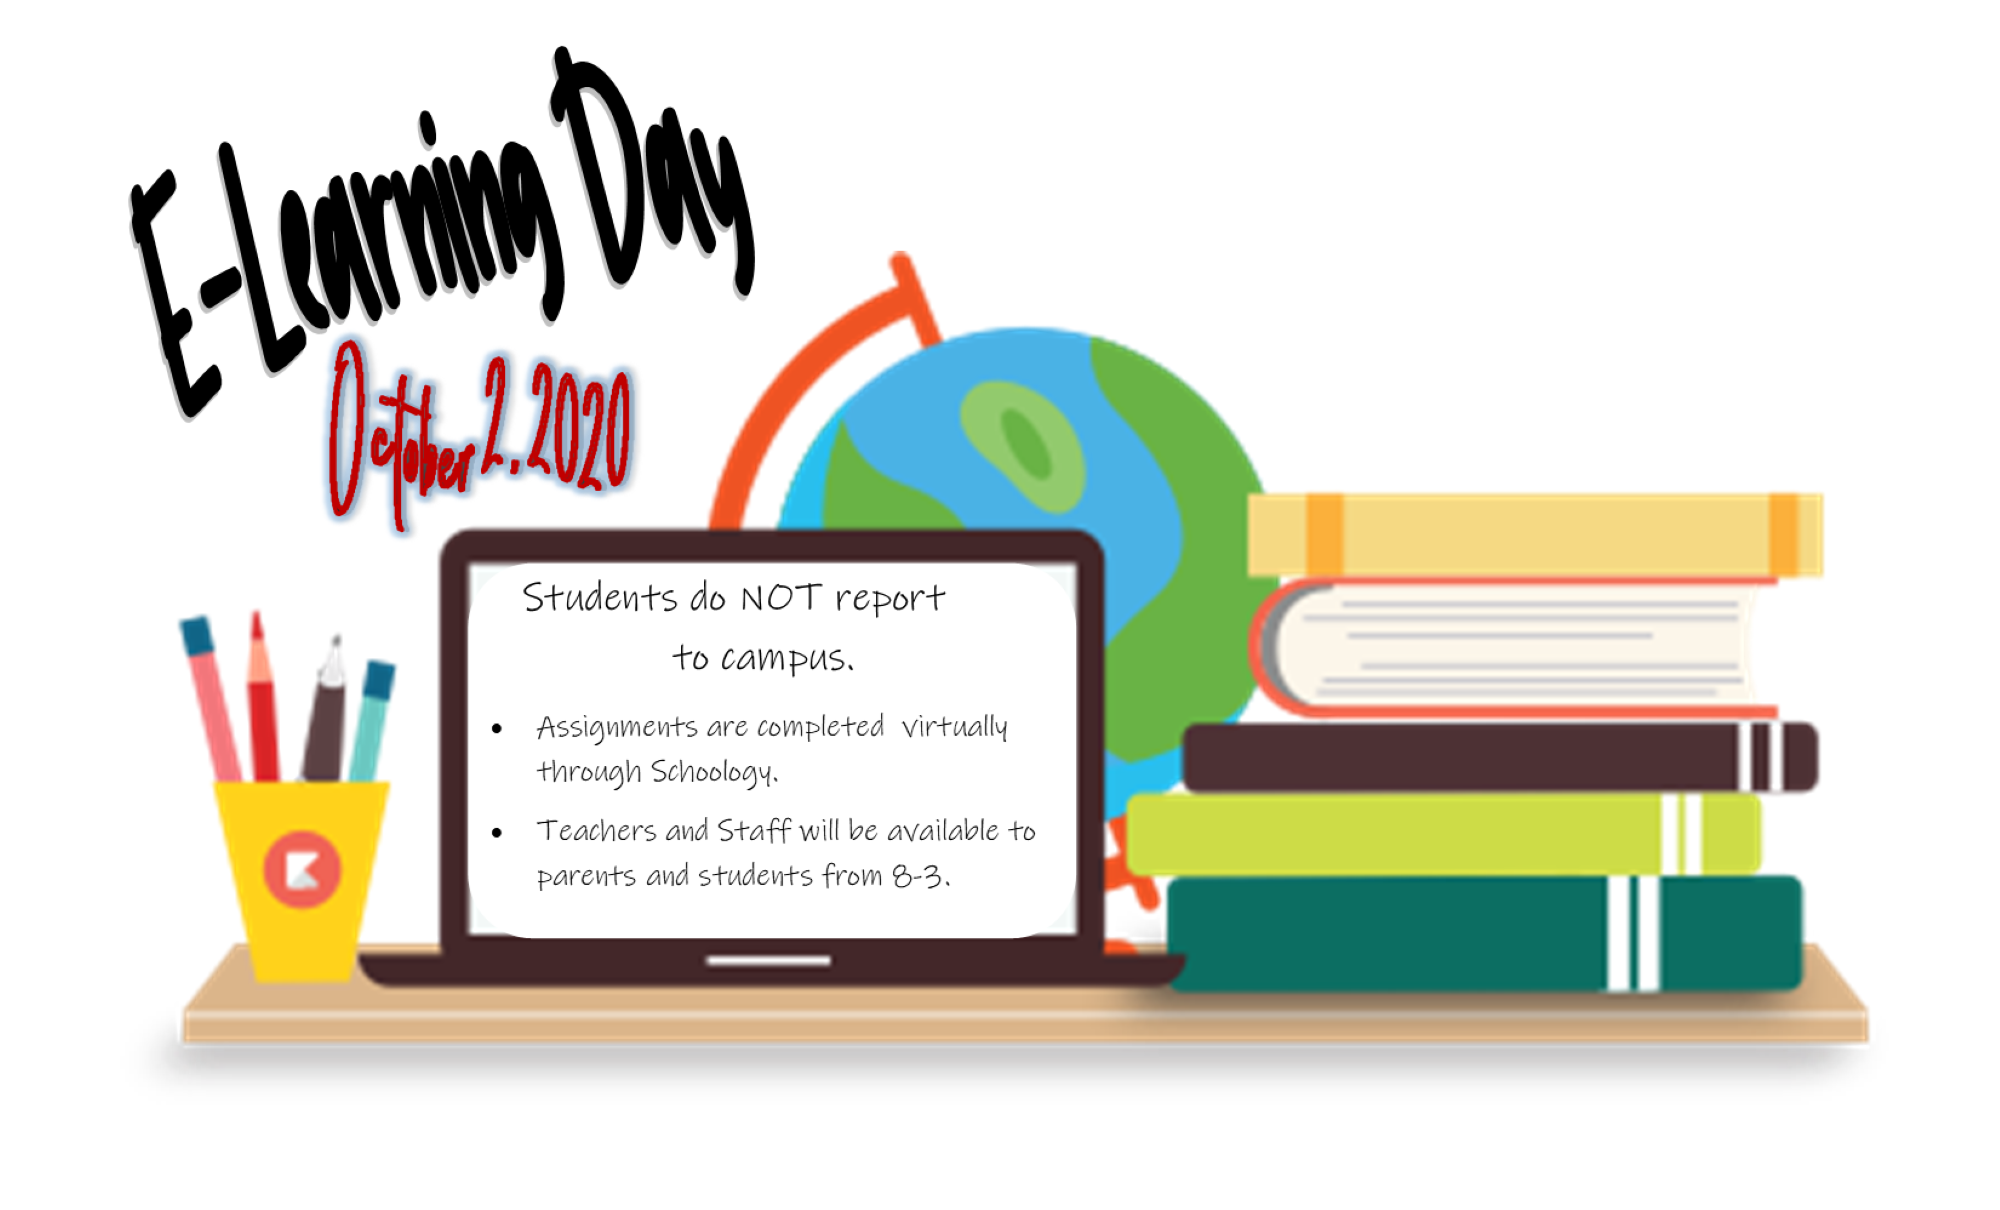 E-Learning Day October 2, 2020 (Students will not report to campus, but will complete assignments virtually.)